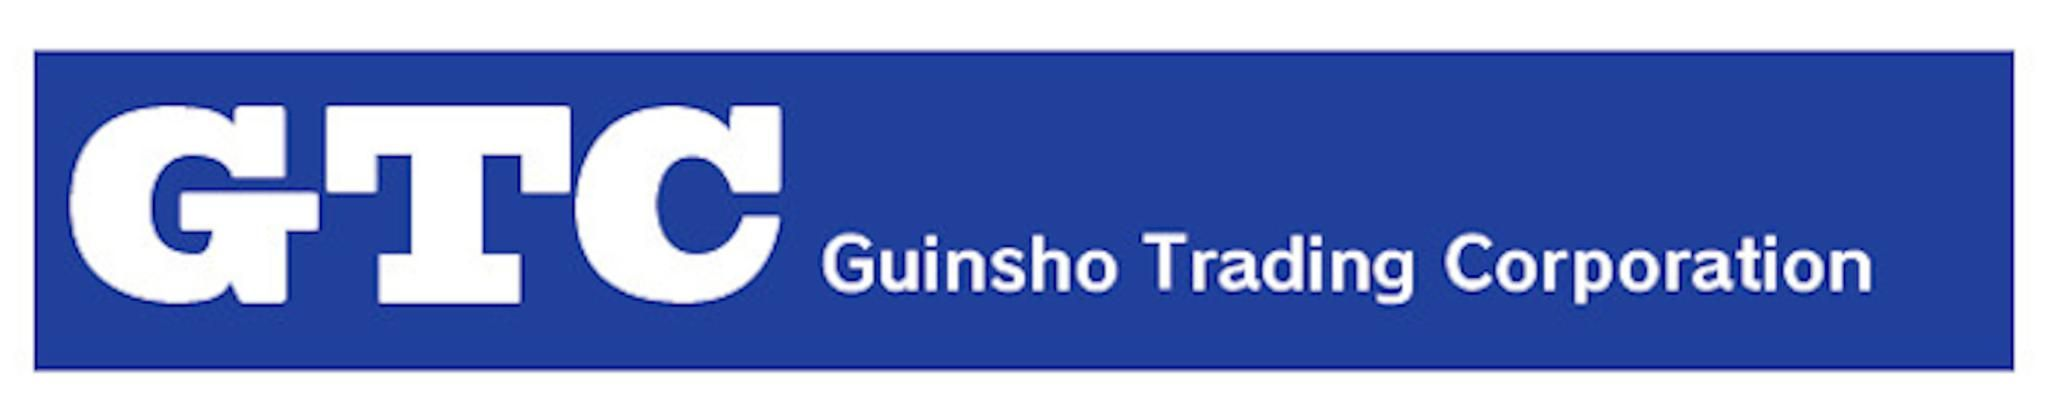 Guinsho Trading Corporation